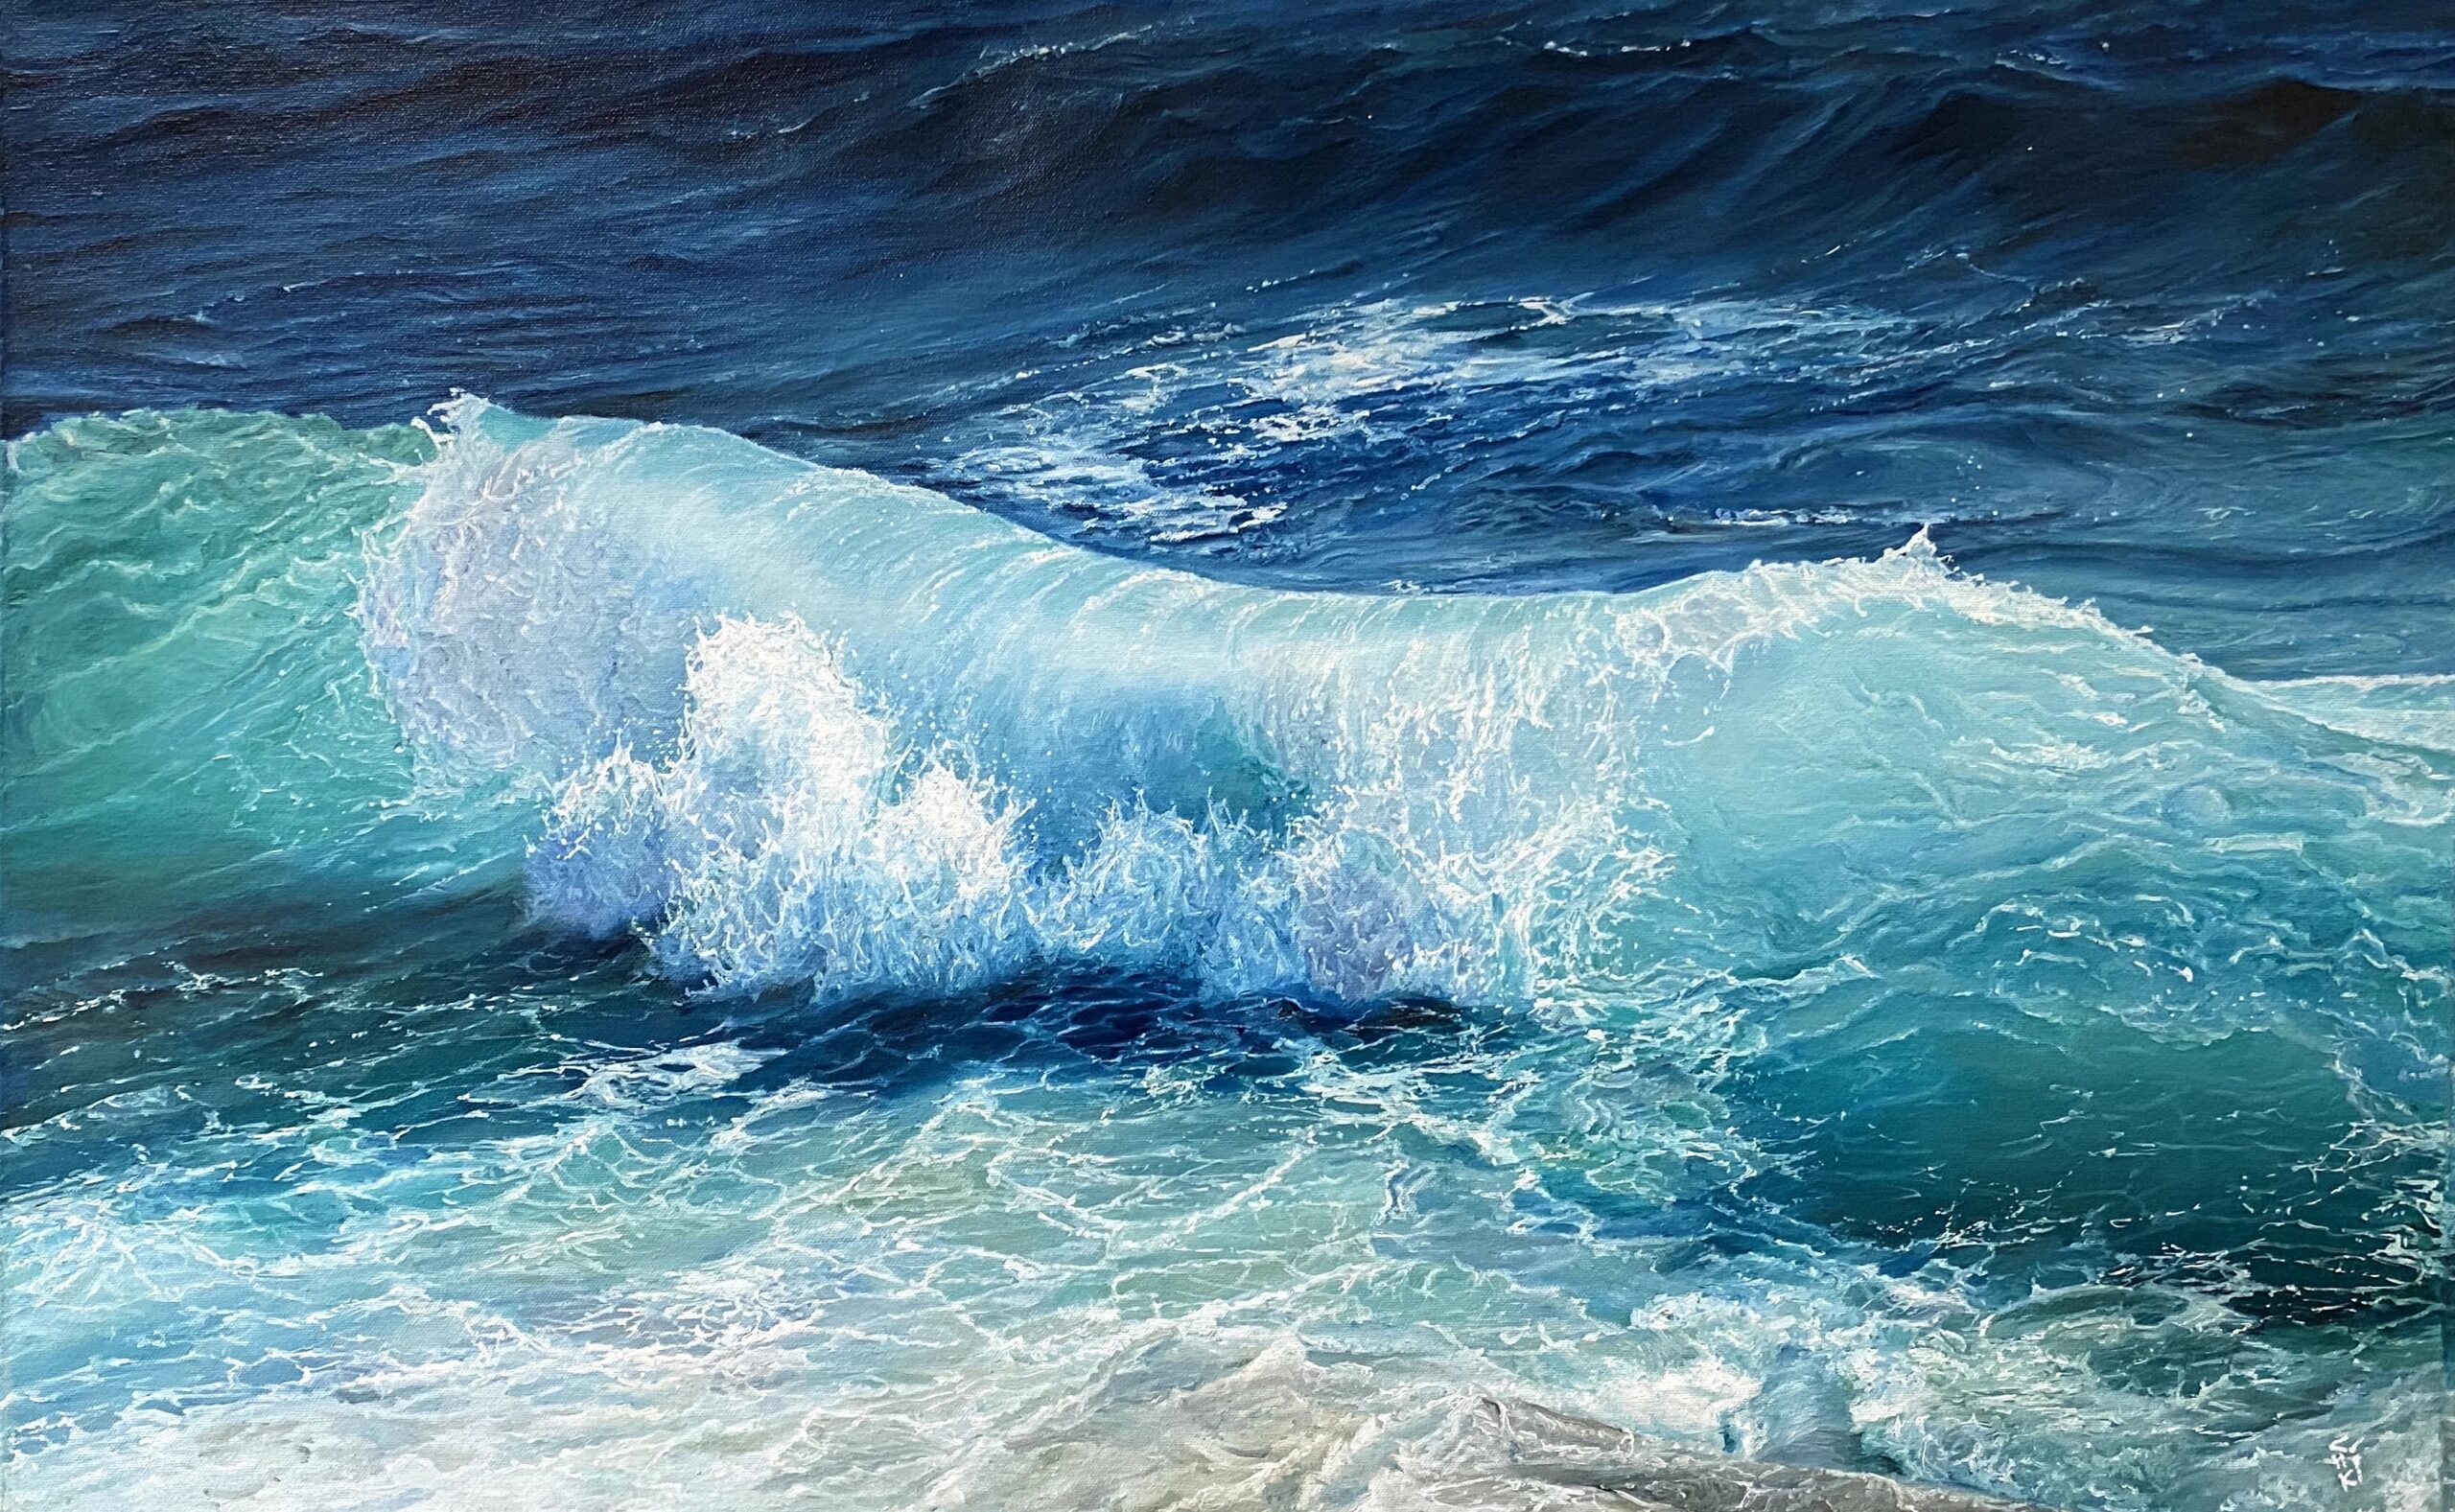 The Wave | Oil Painting by Chikita Patel | 36x24 | 18.5